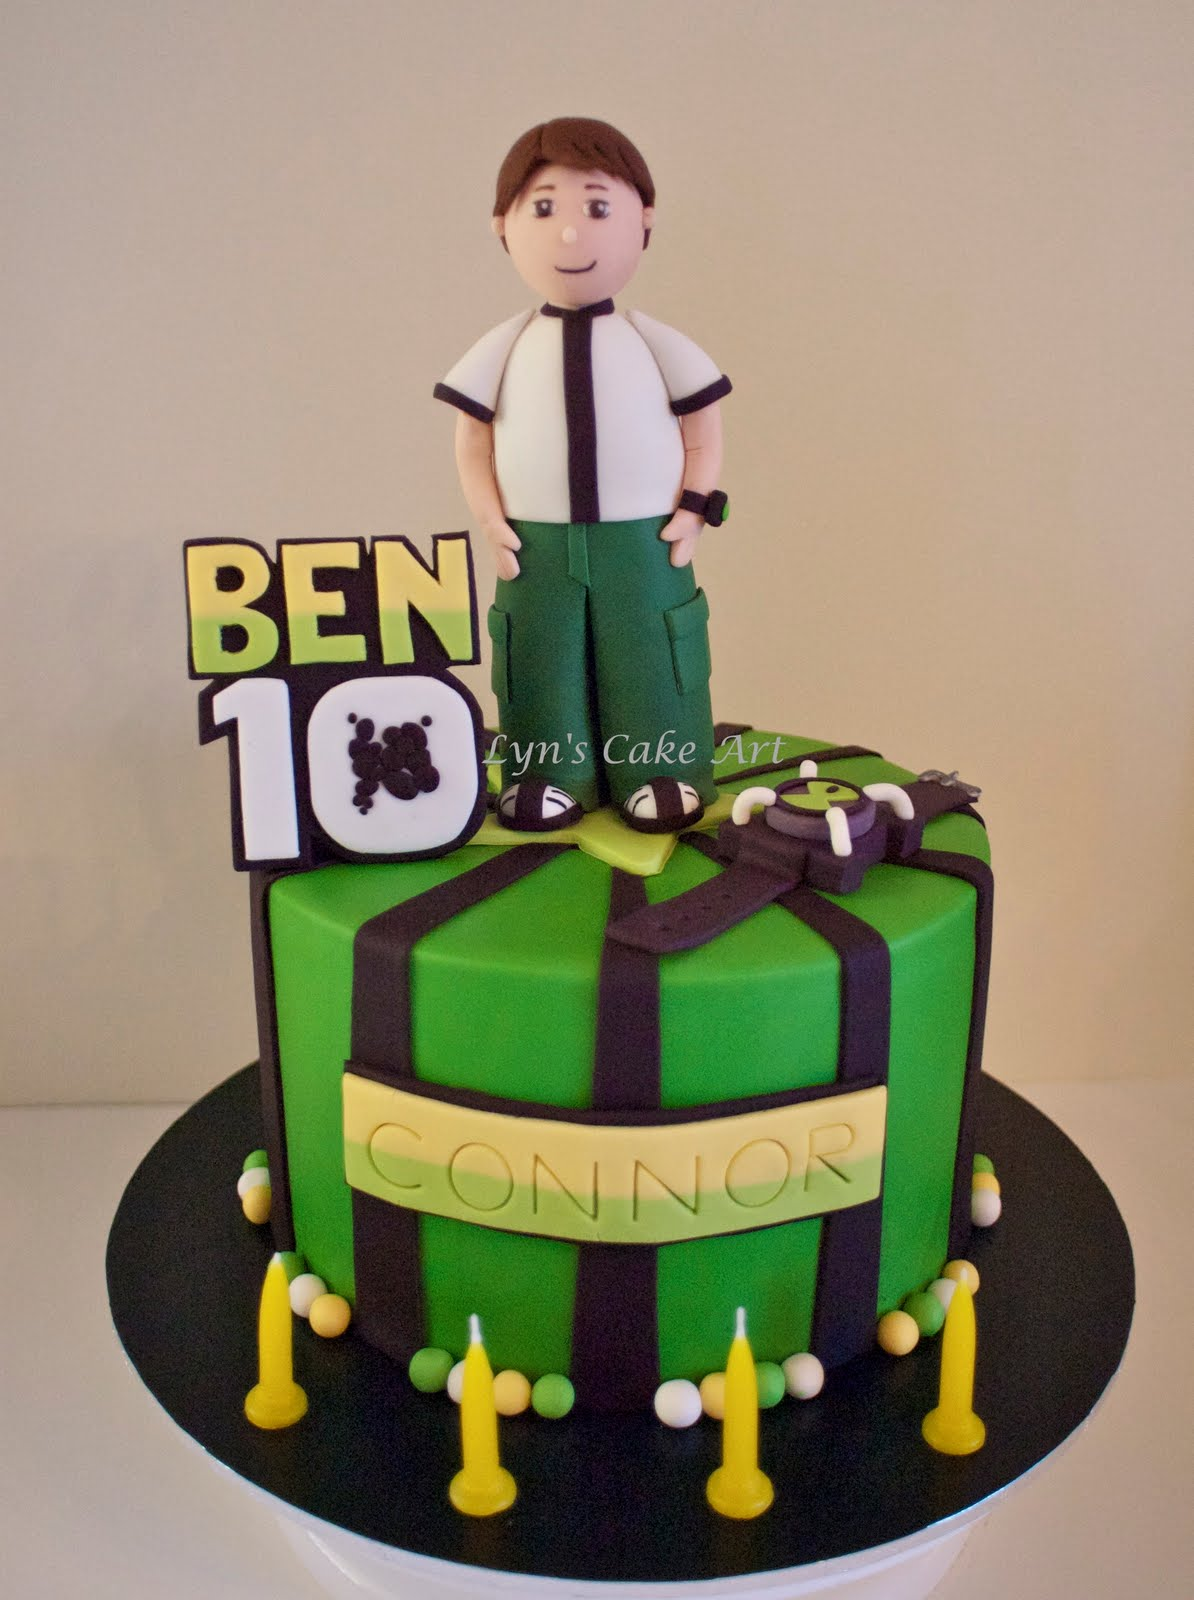 Cake Art Supplies Castle Hill : Lyn s Cake Art: Ben 10